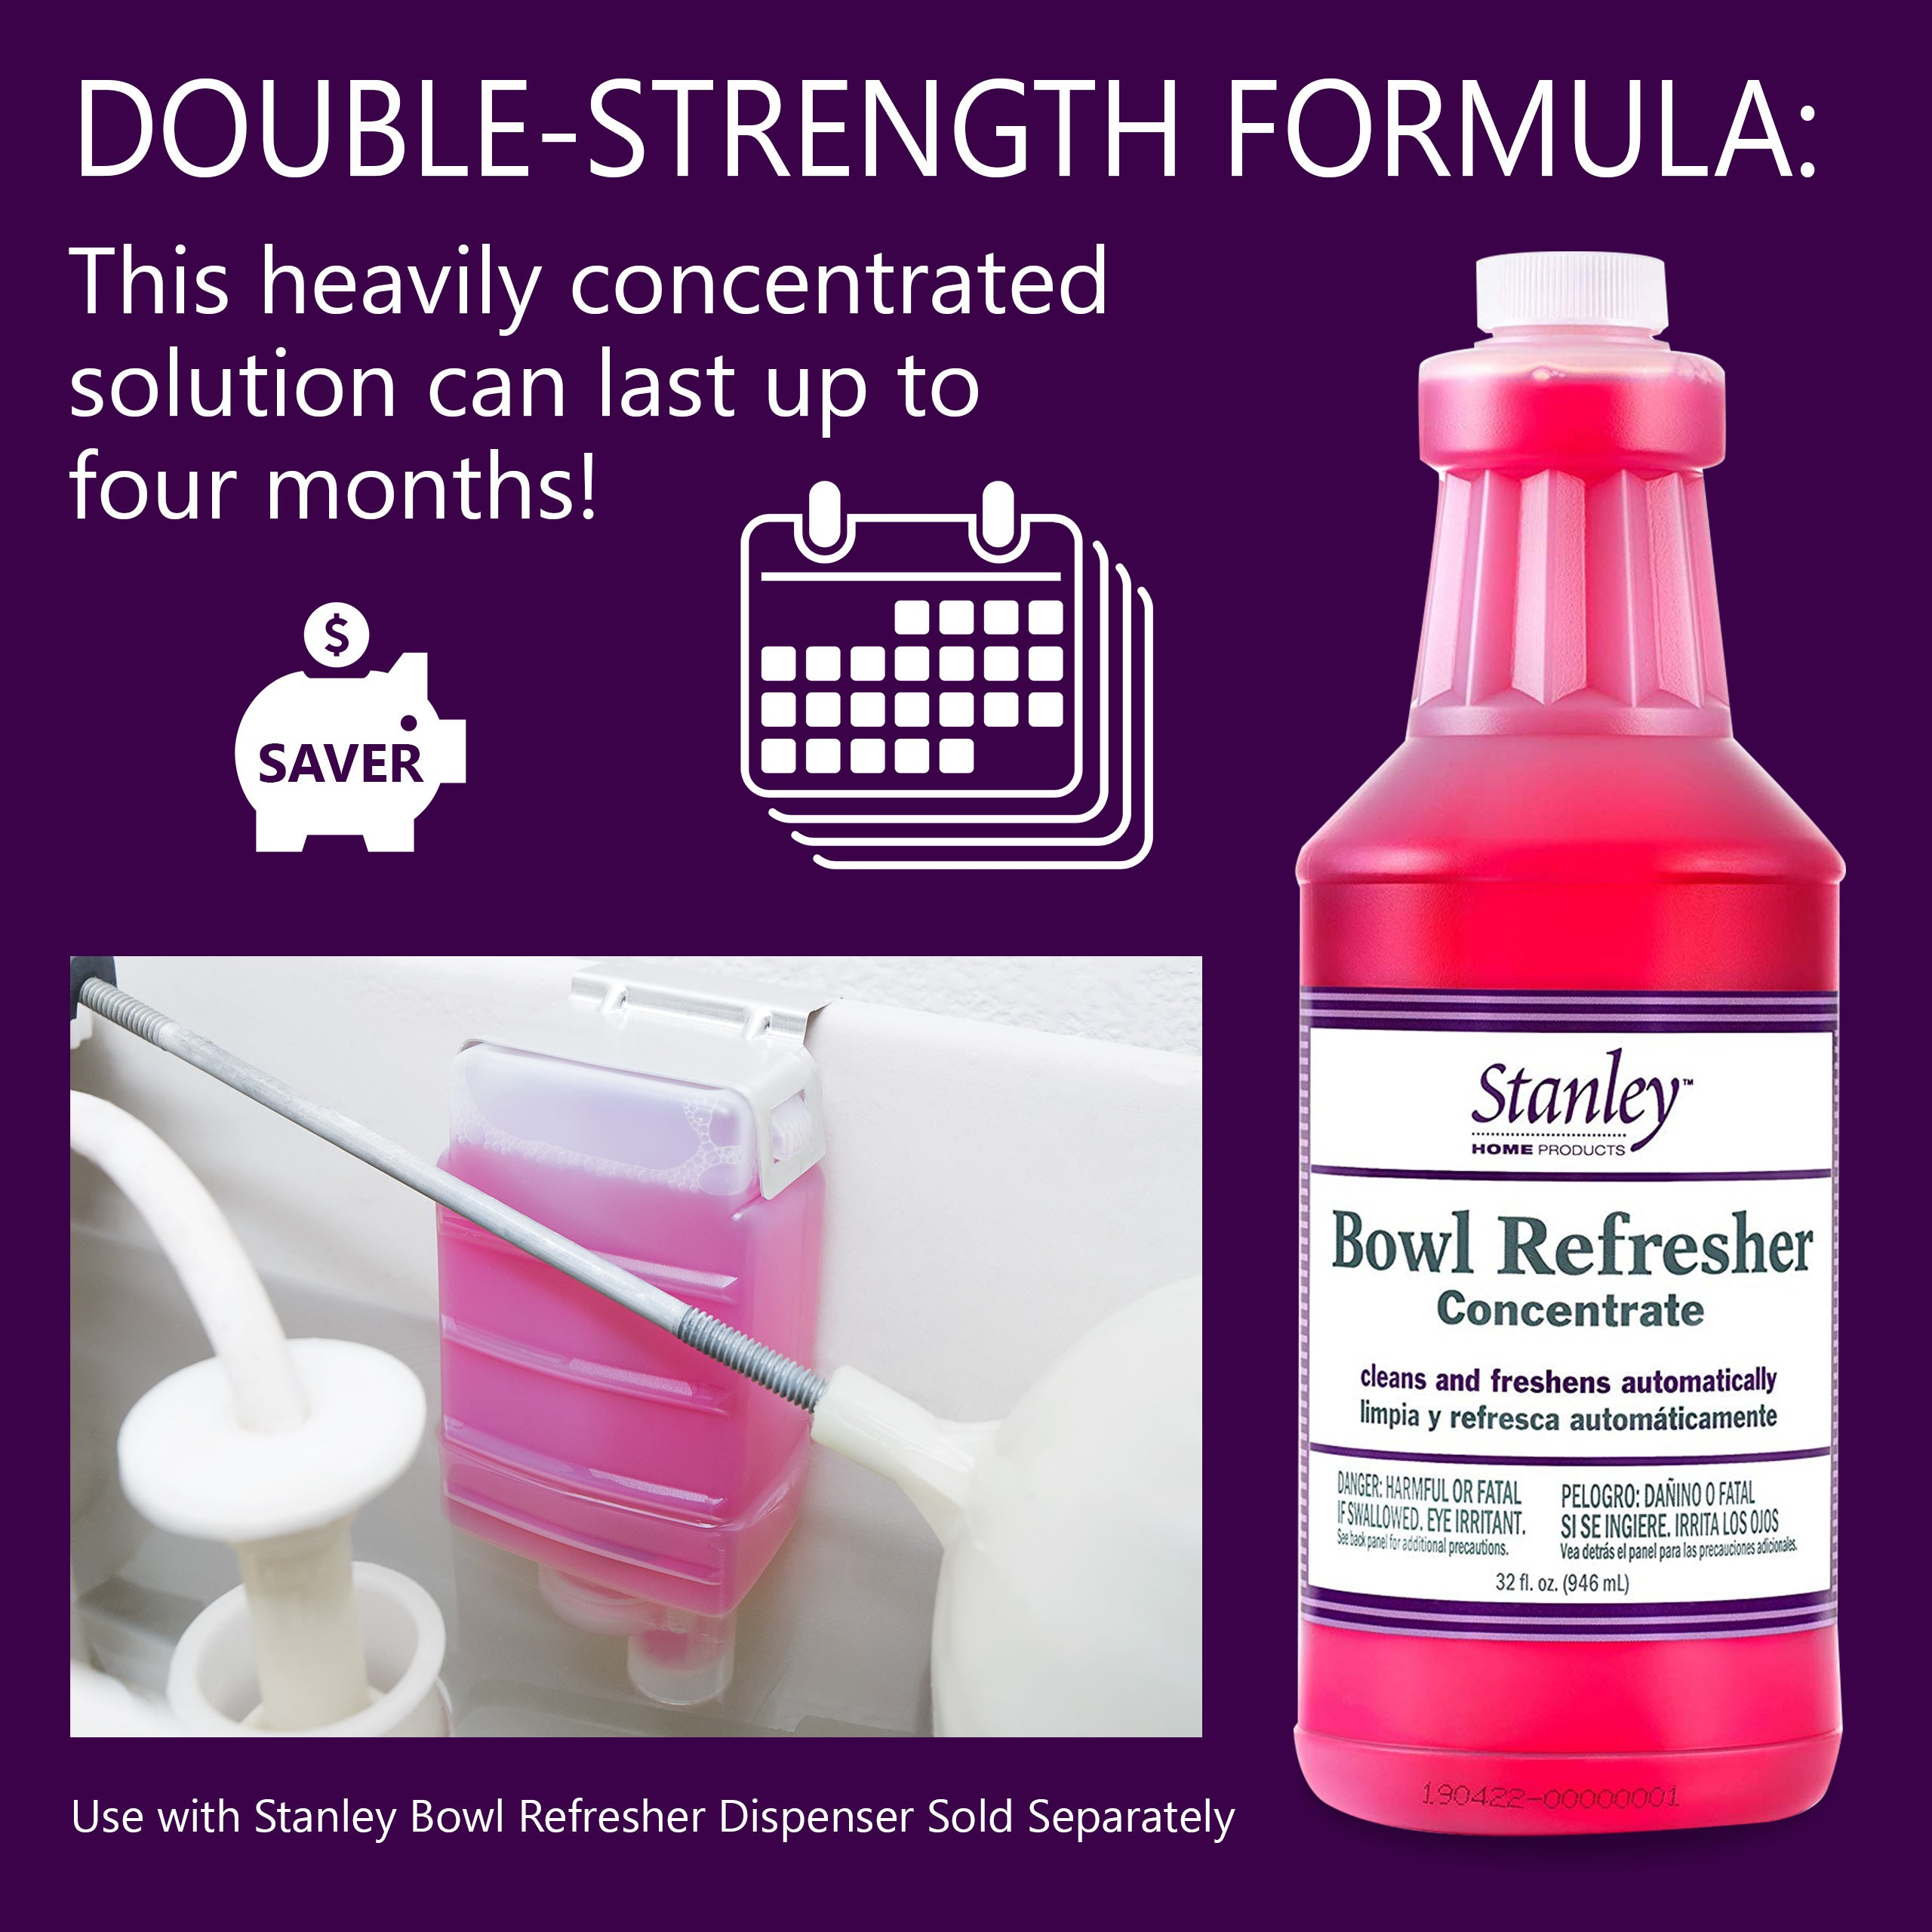 Toilet Cleaner & Deodorizer, Bowl Refresher Concentrate